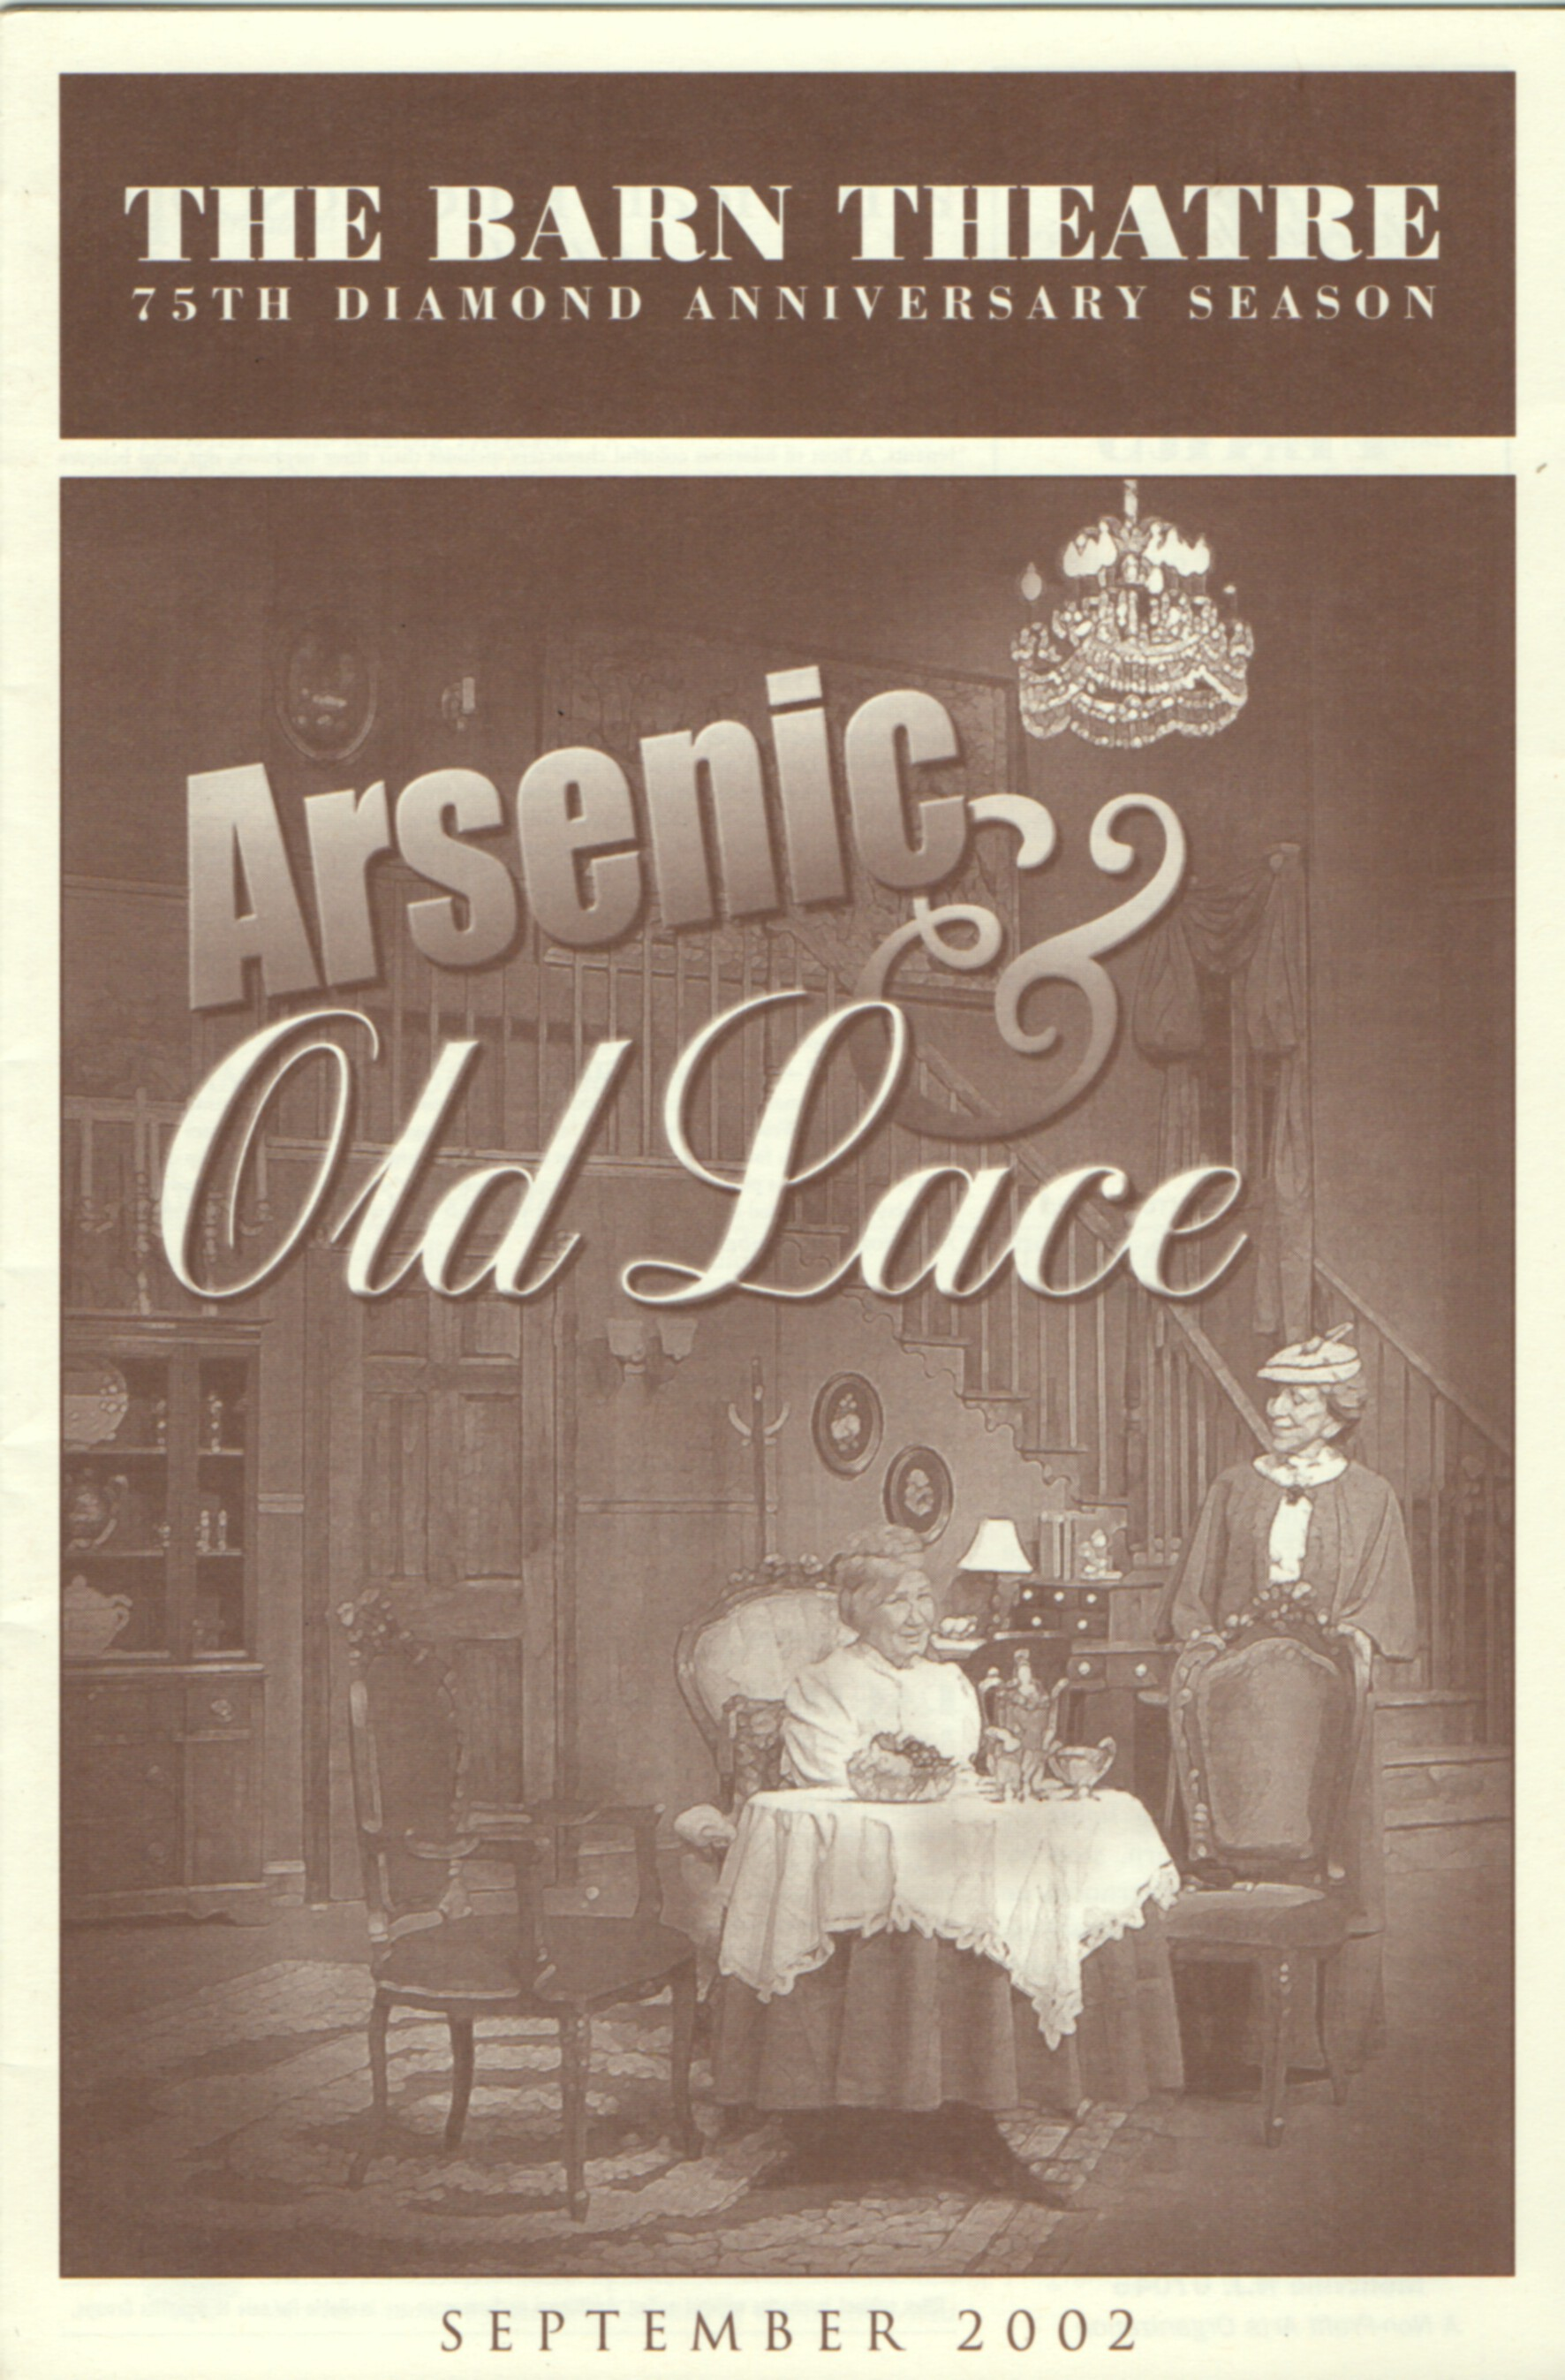 Program Cover for Arsenic and Old Lace